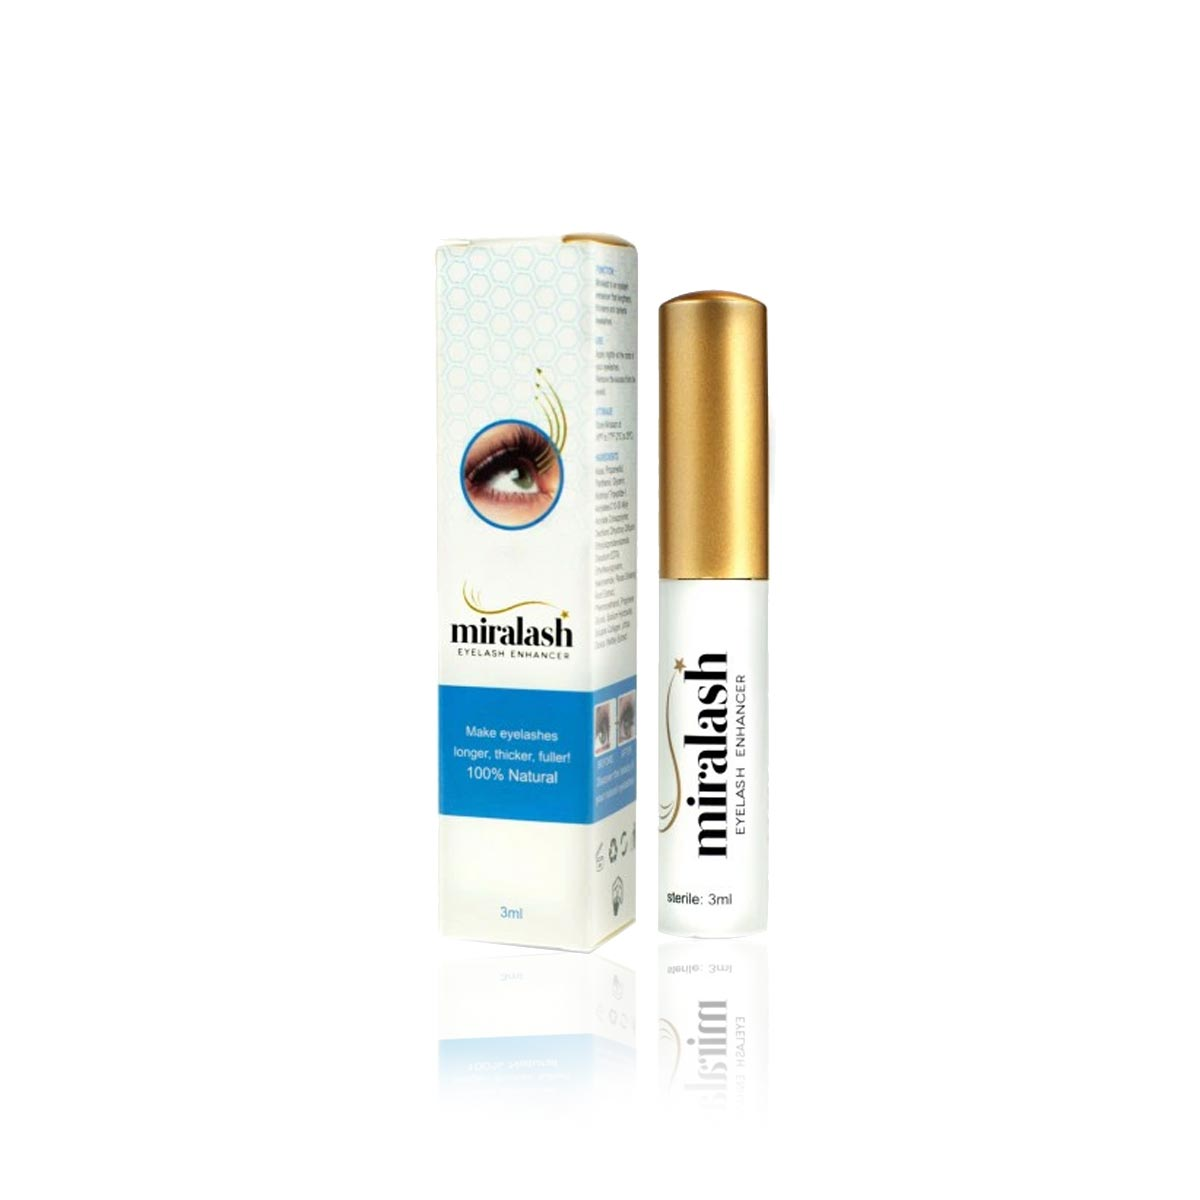 Miralash-Eyelash-Enhancer-3-ml-Miss-Eco